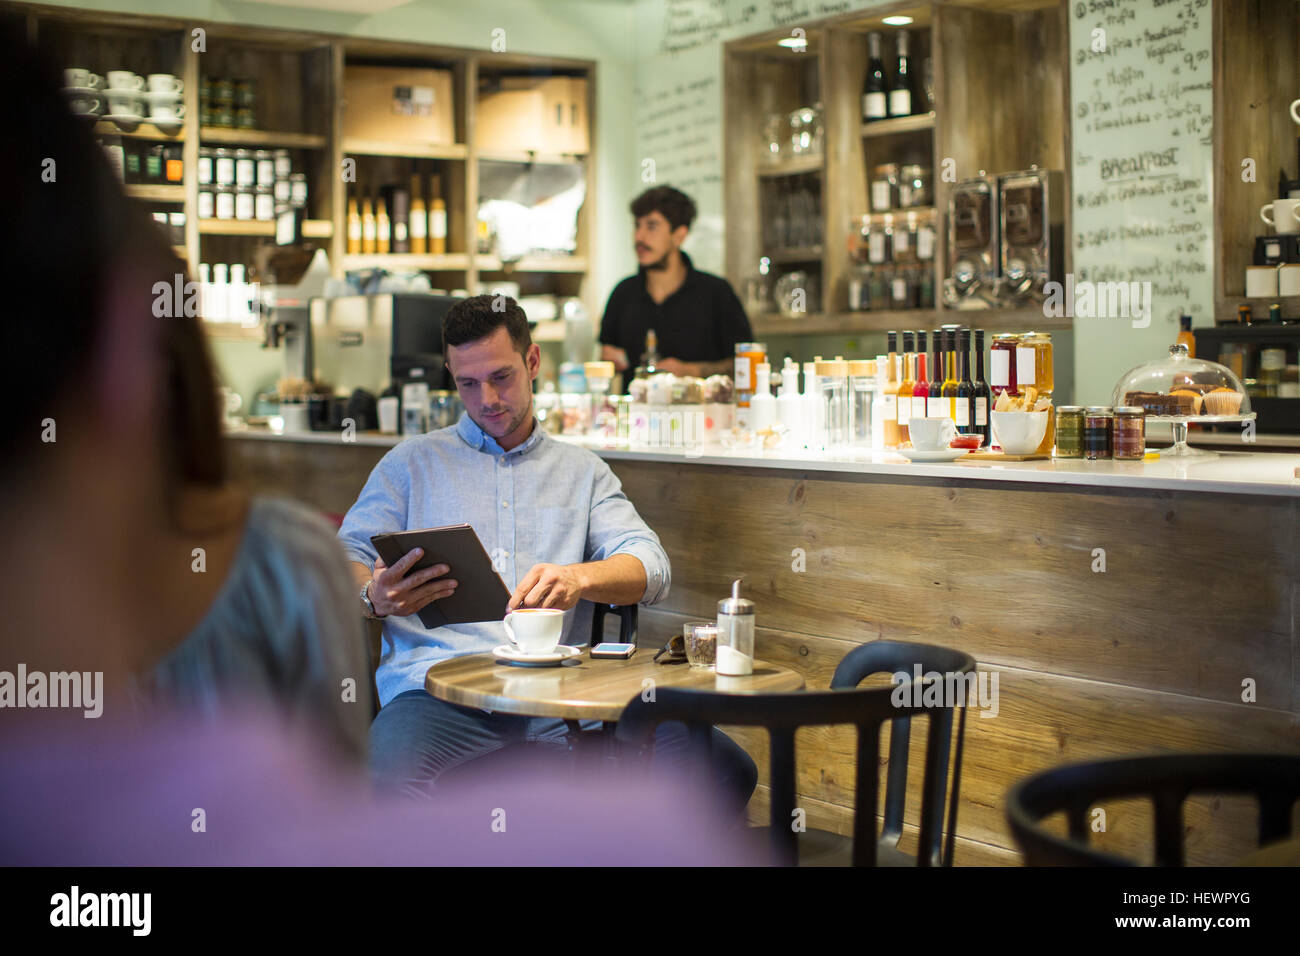 Man sitting in cafe parcourt digital tablet Photo Stock